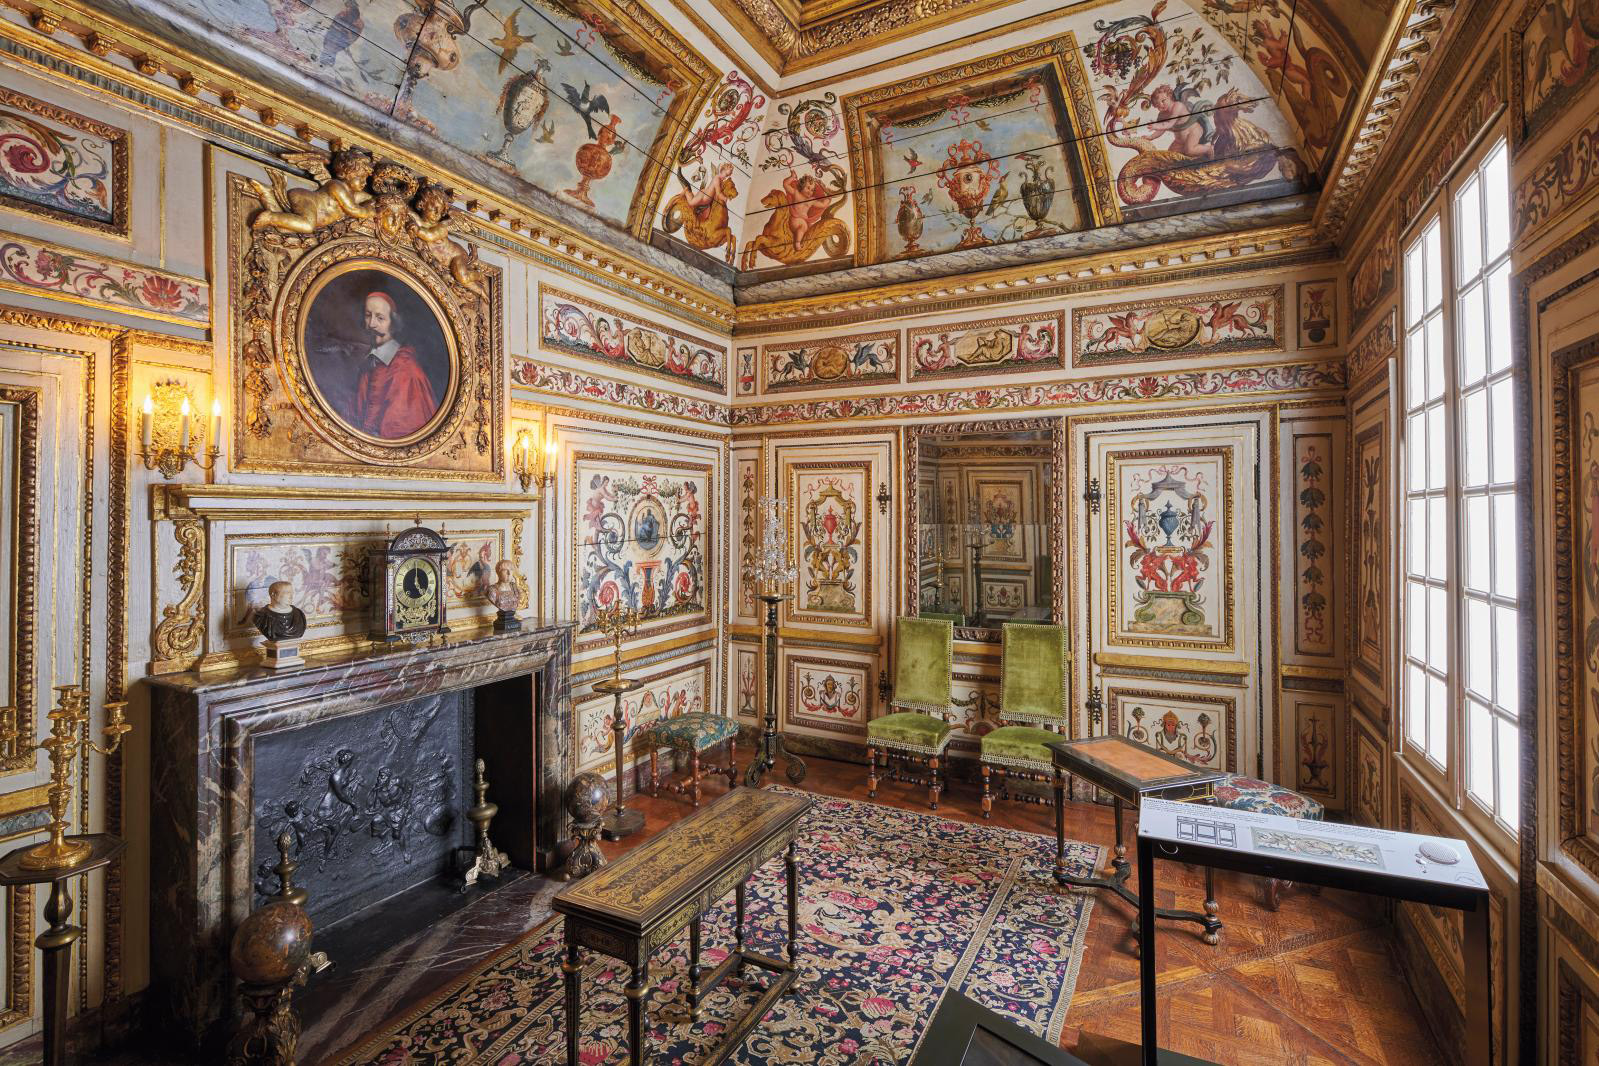 The wood paneling of the study in the Hôtel Colbert de Villacerf, acquired by the City of Paris in 1867.Musée Carnavalet - Histoire de Par